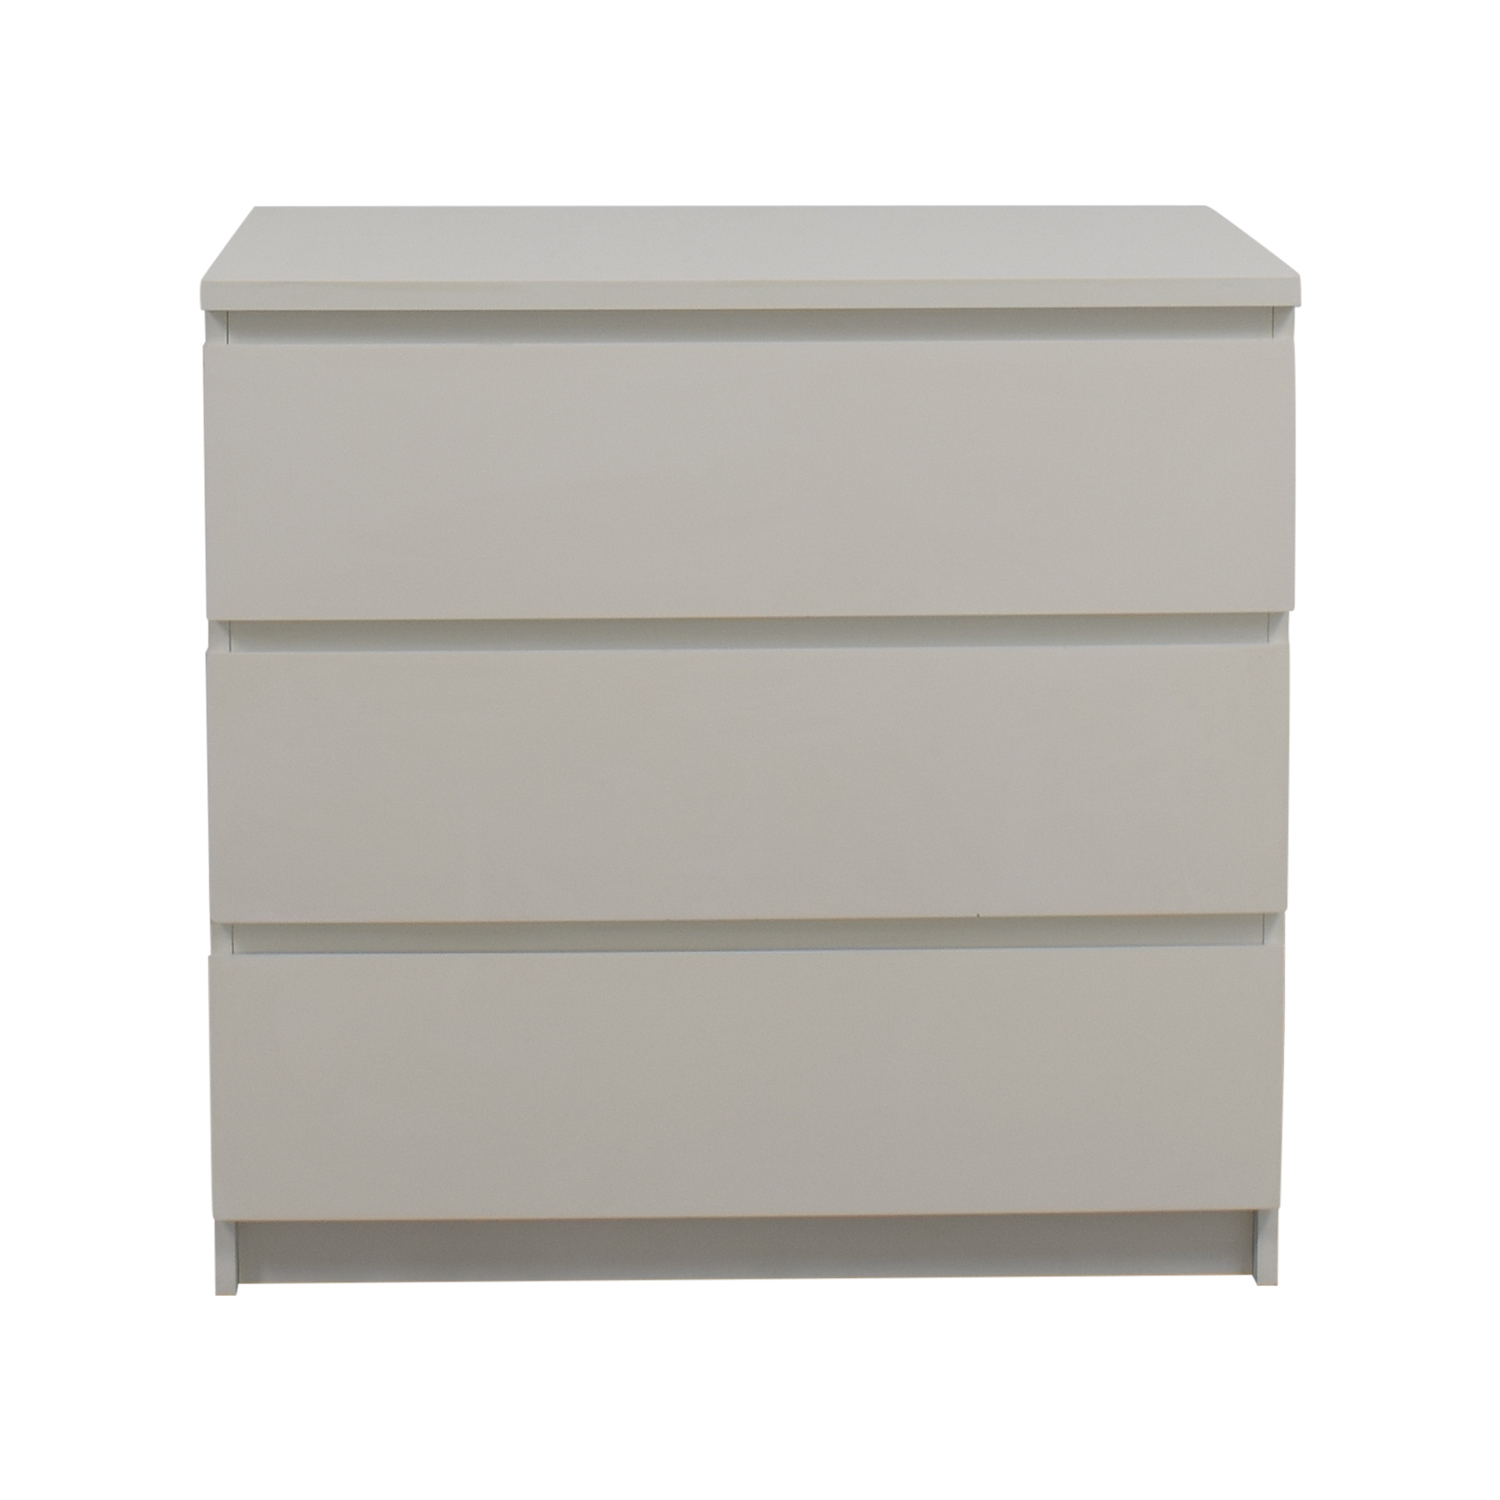 IKEA IKEA Malm White Dresser coupon